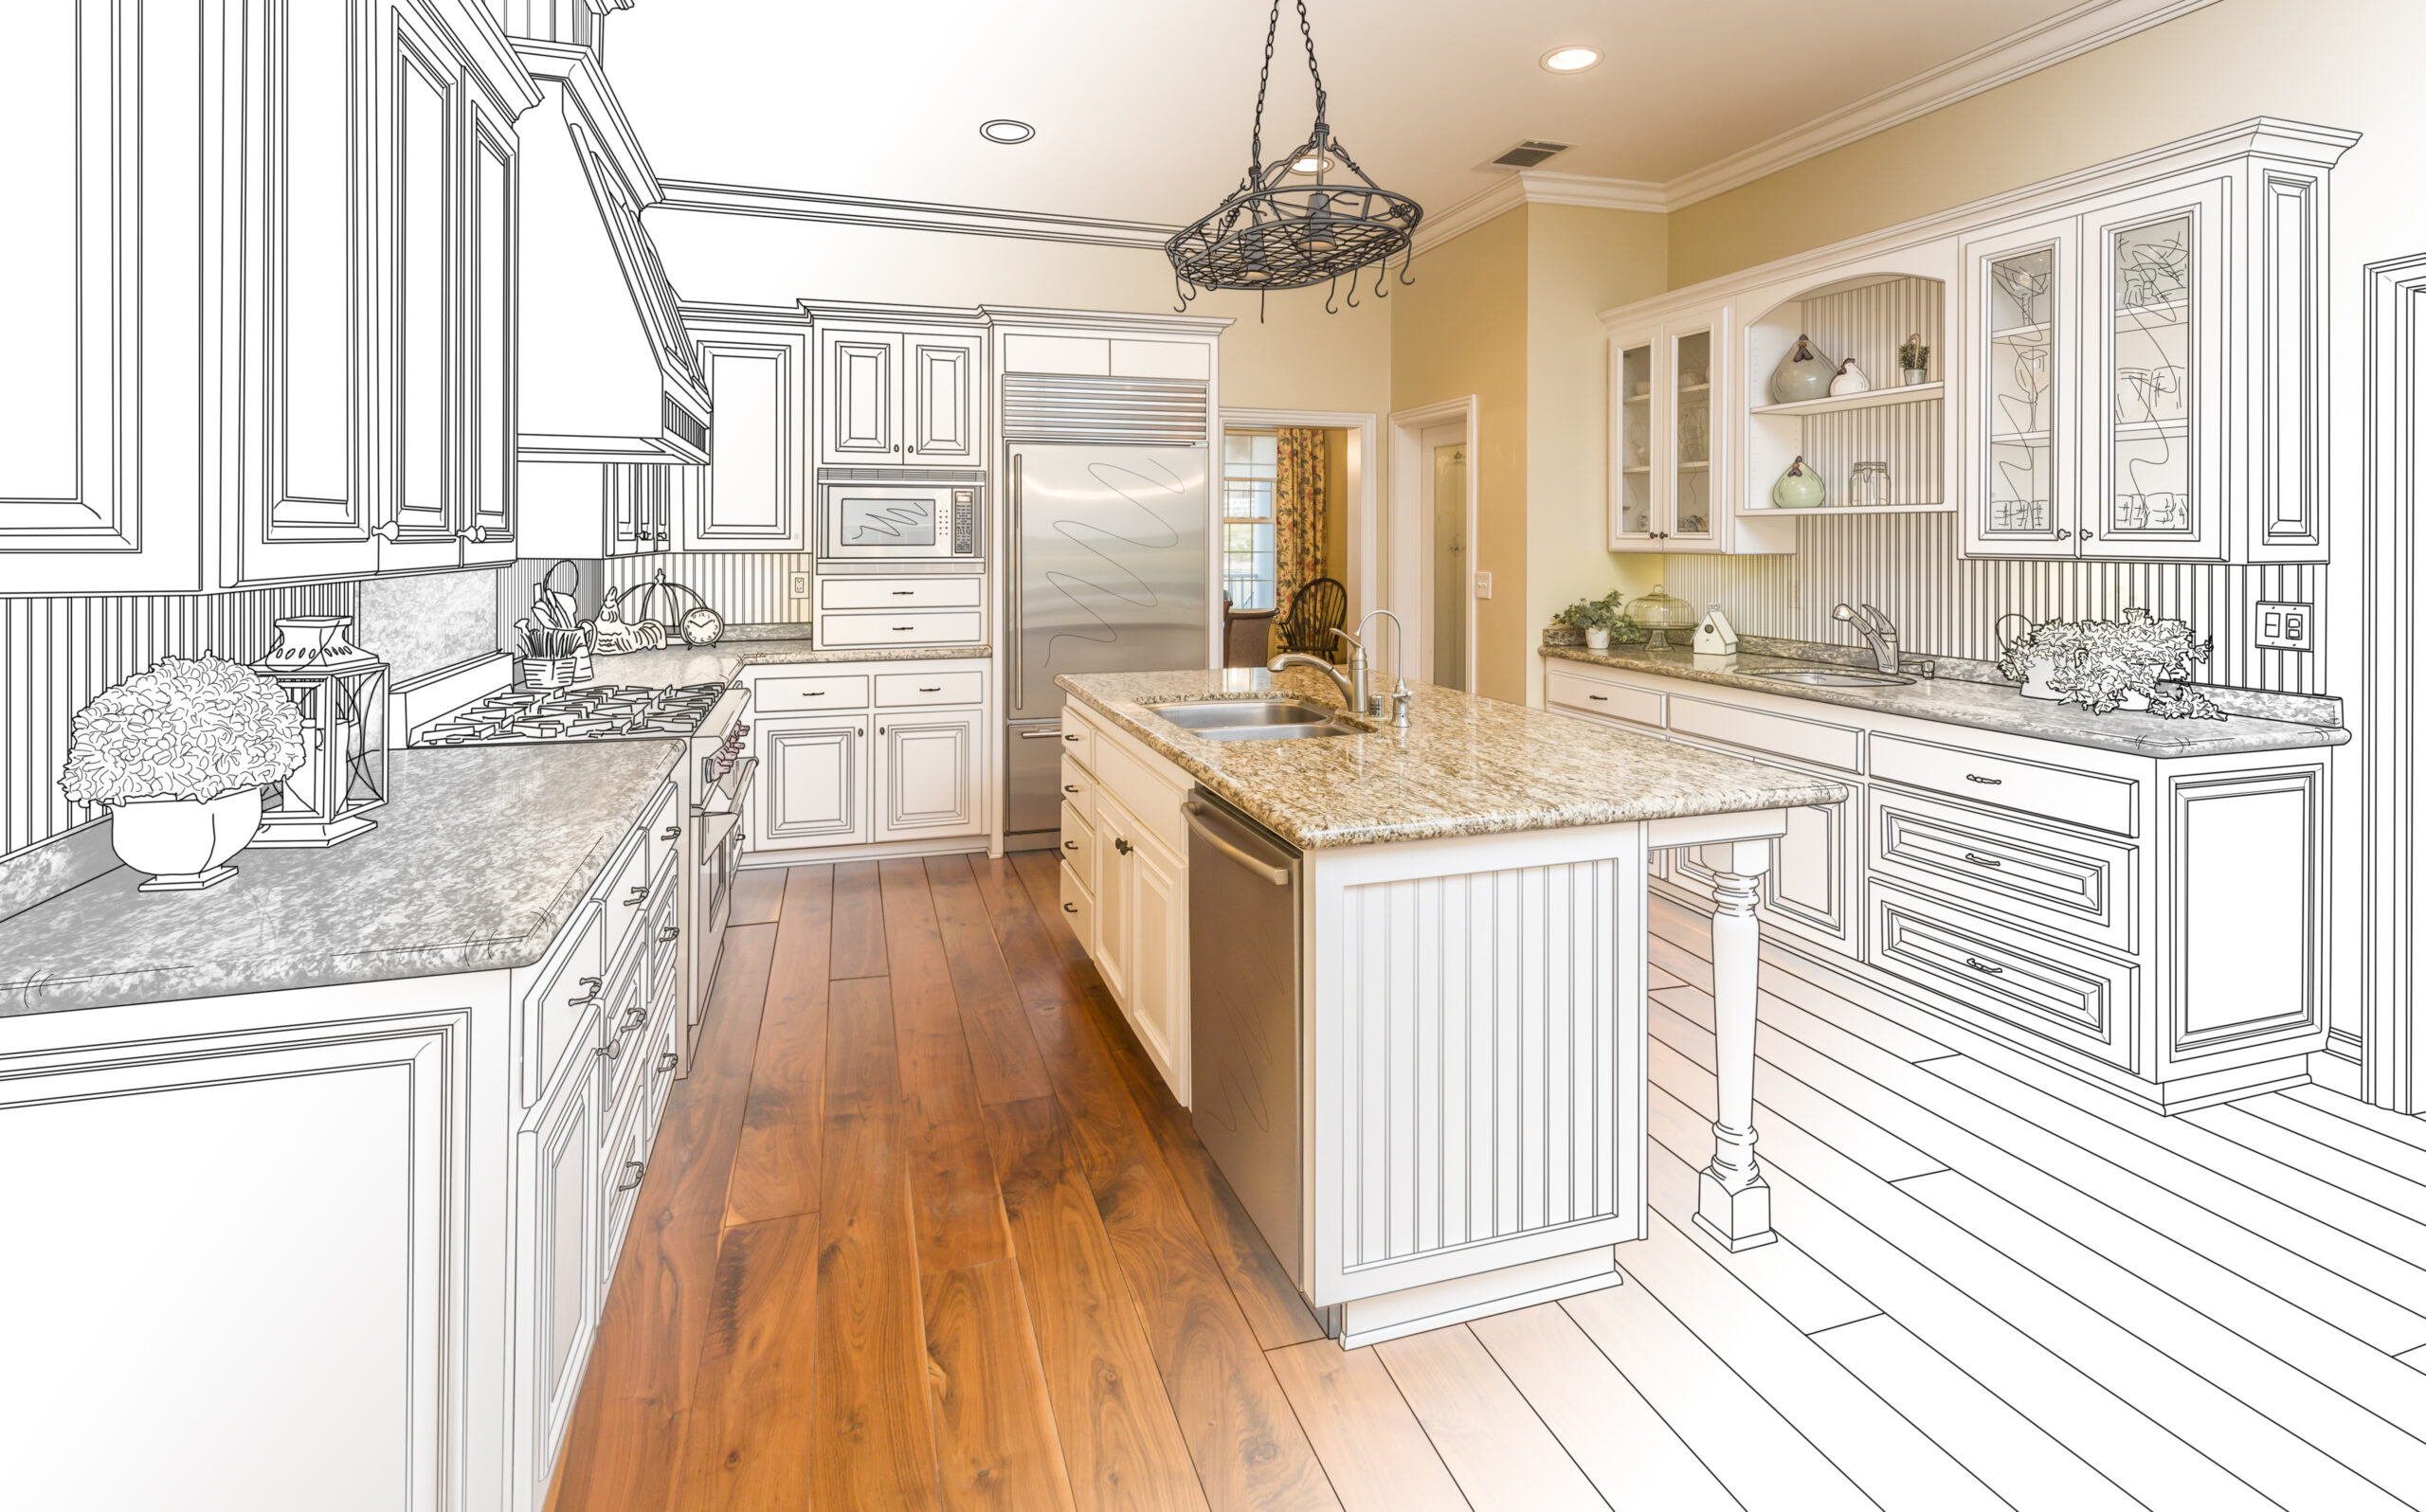 How to Come Up With Kitchen Design Ideas for Your Blog